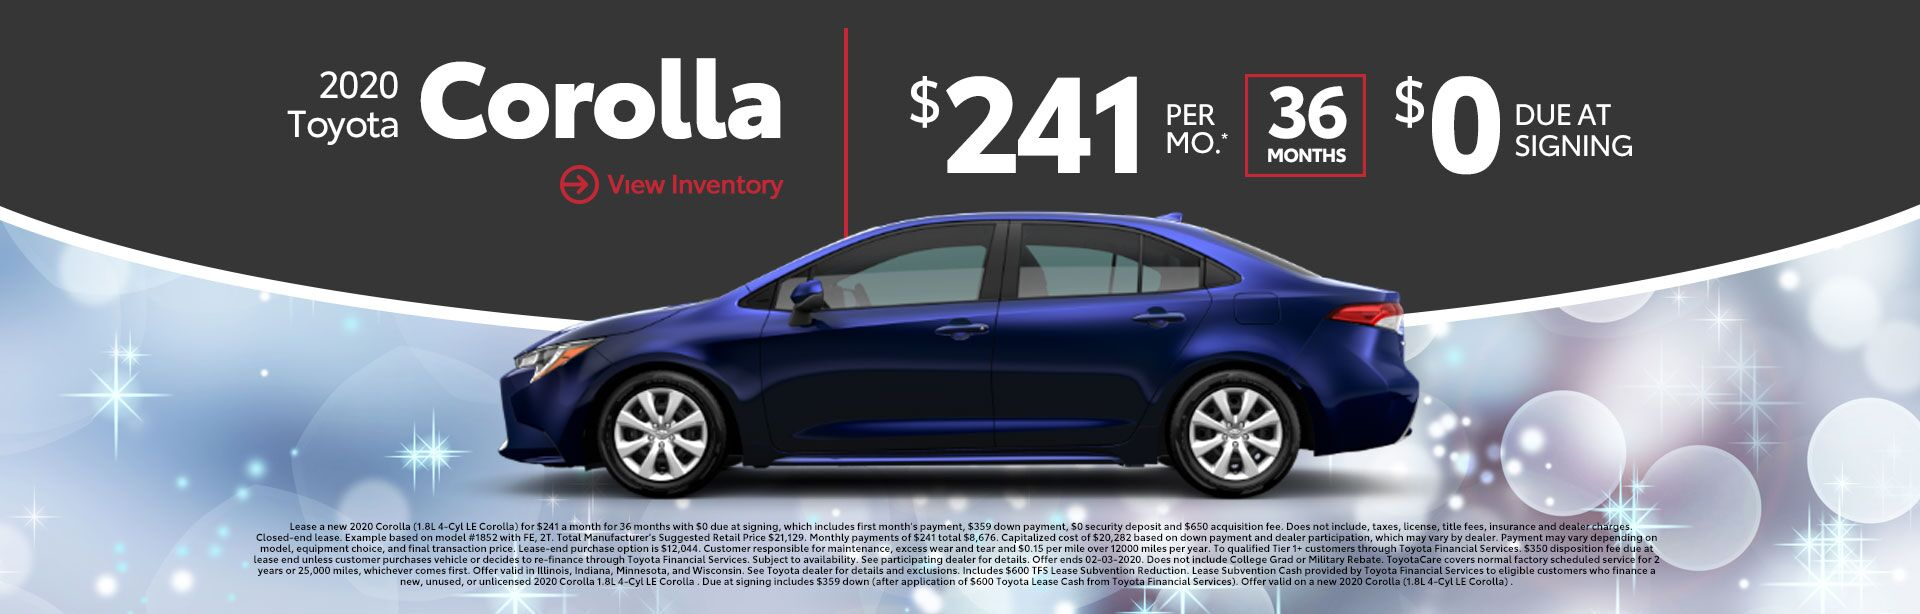 2020 Toyota Corolla $241/mo 36 Months 0% Due At Signing